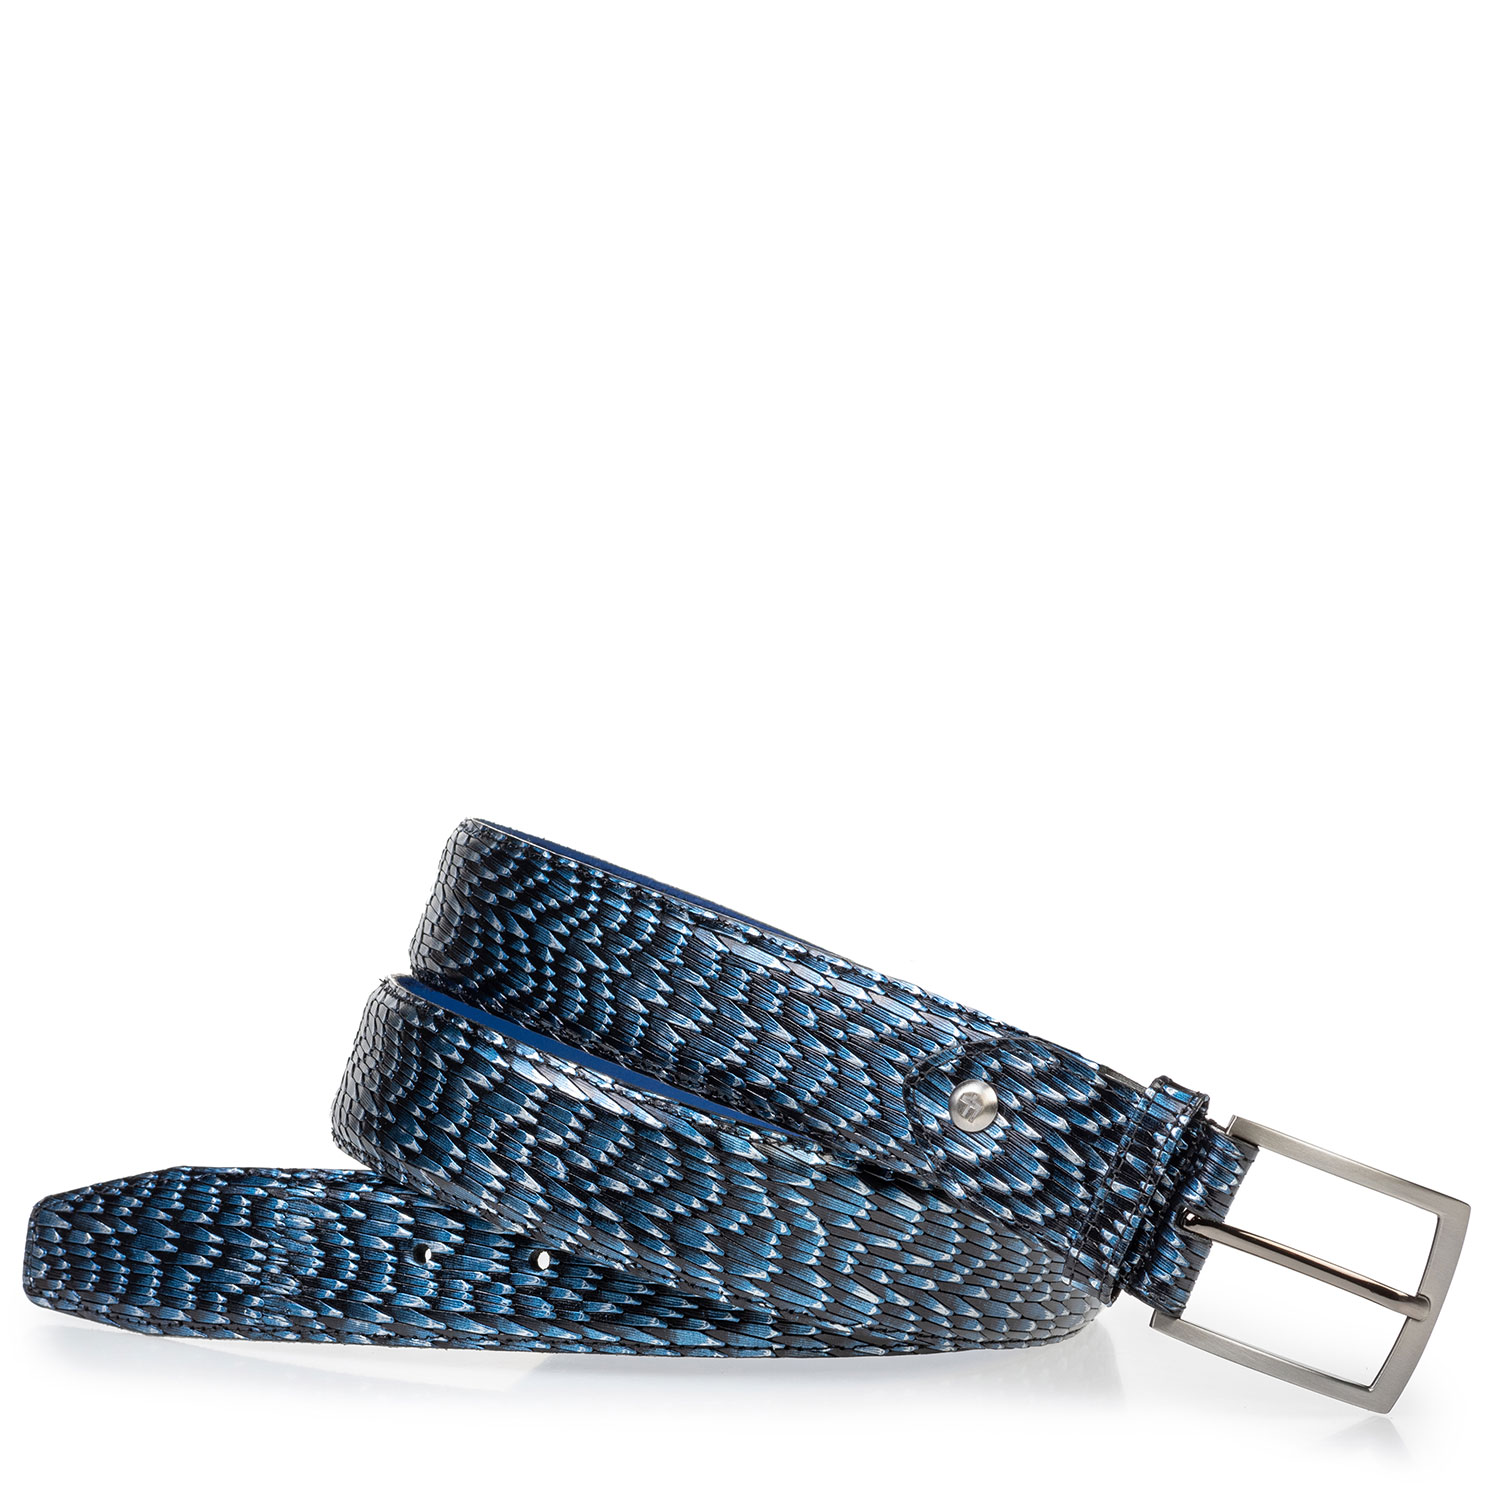 75203/12 - Leather belt with print